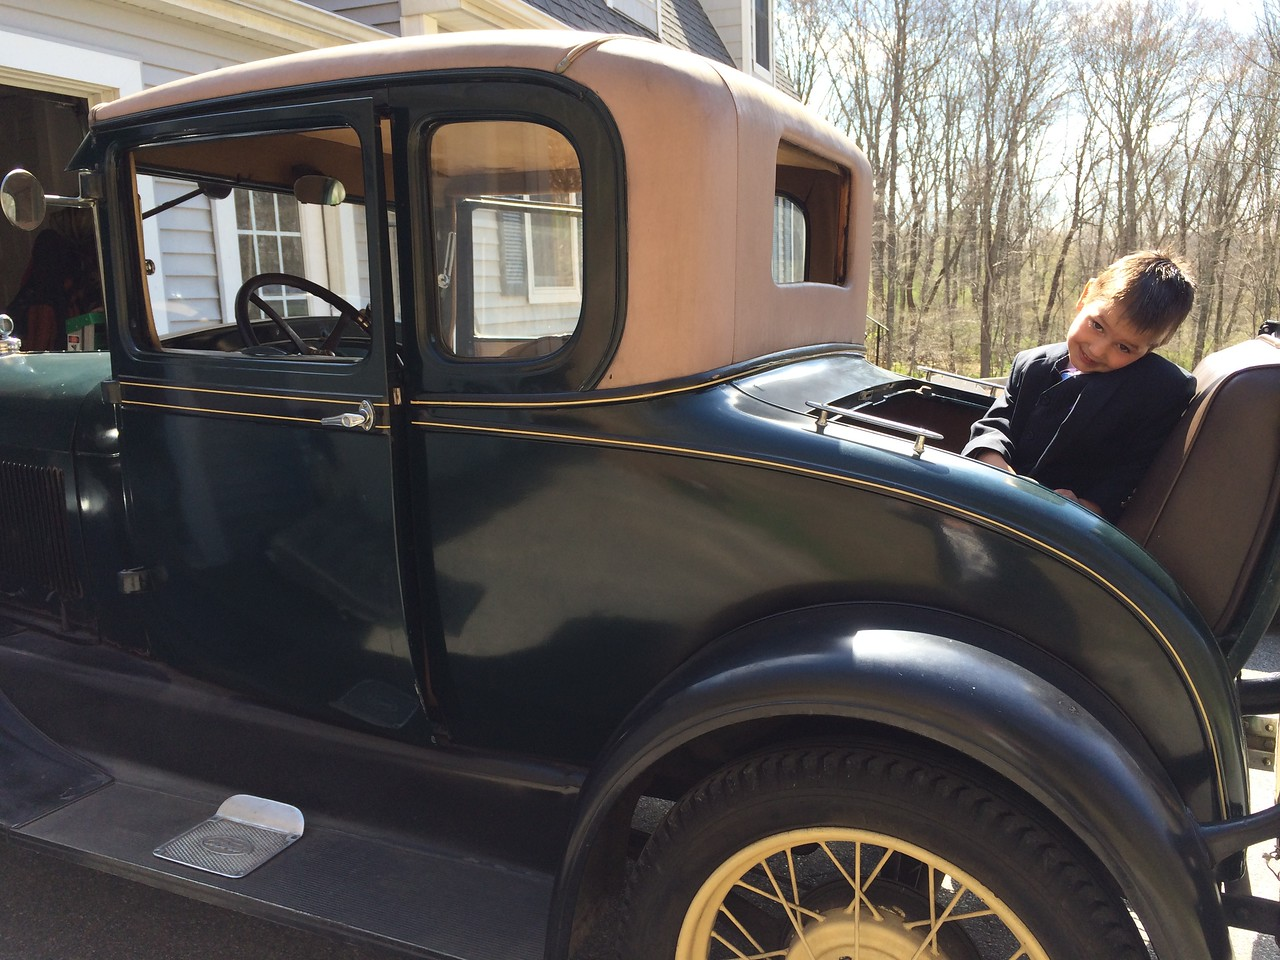 Miller rode in the rumble seat to church.